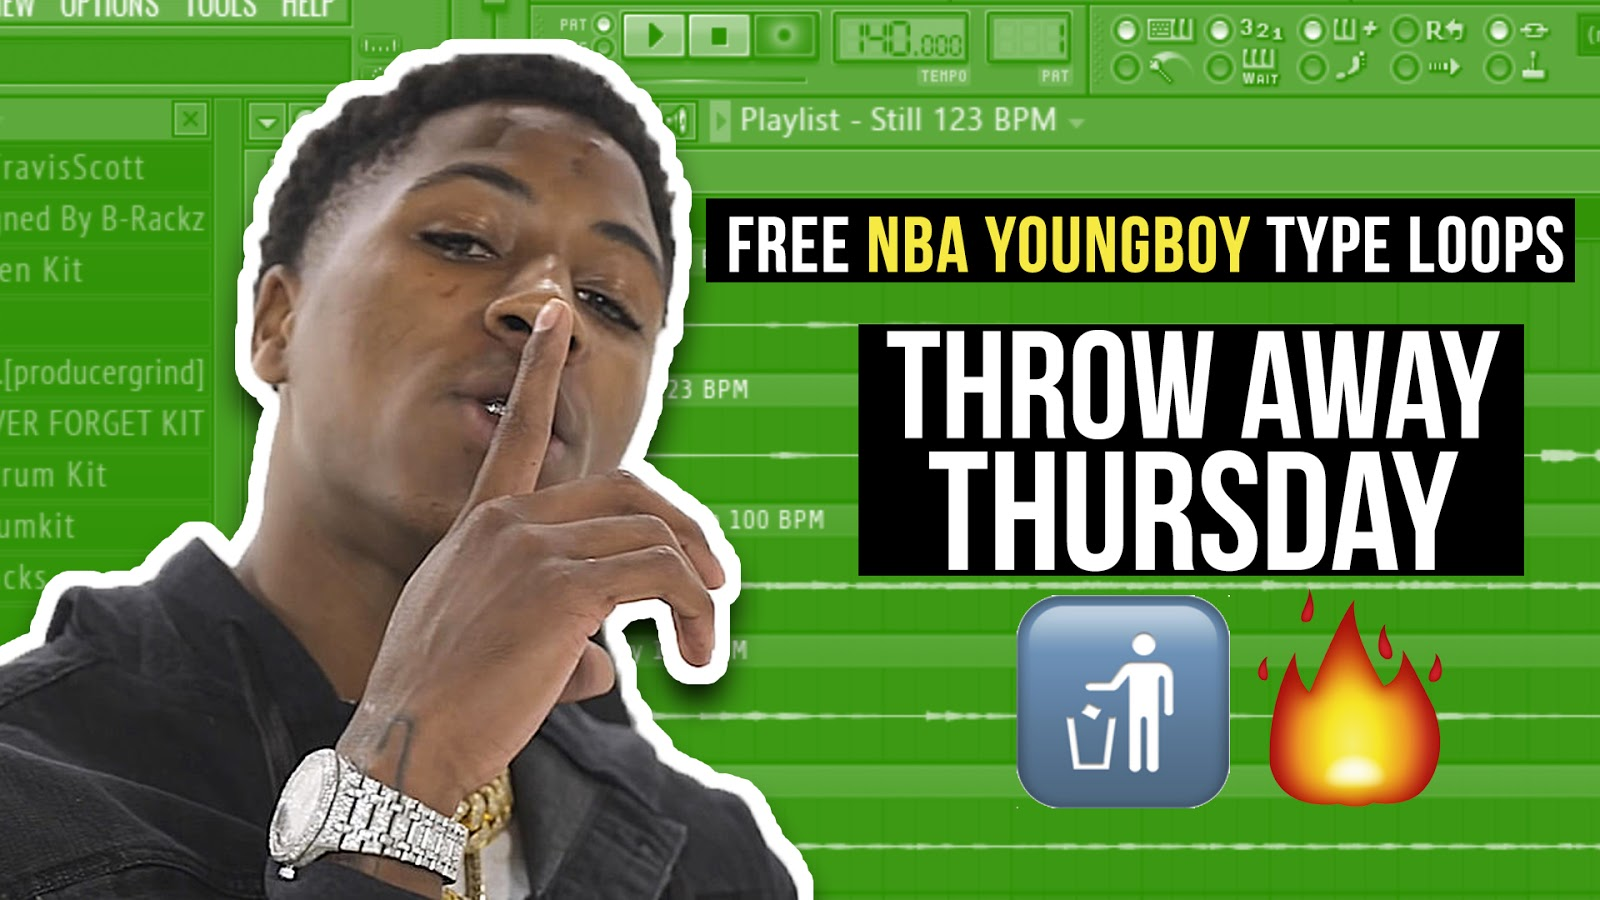 StudioTrappin - FREE NBA YOUNG BOY TYPE LOOPS FROM Sir Heist